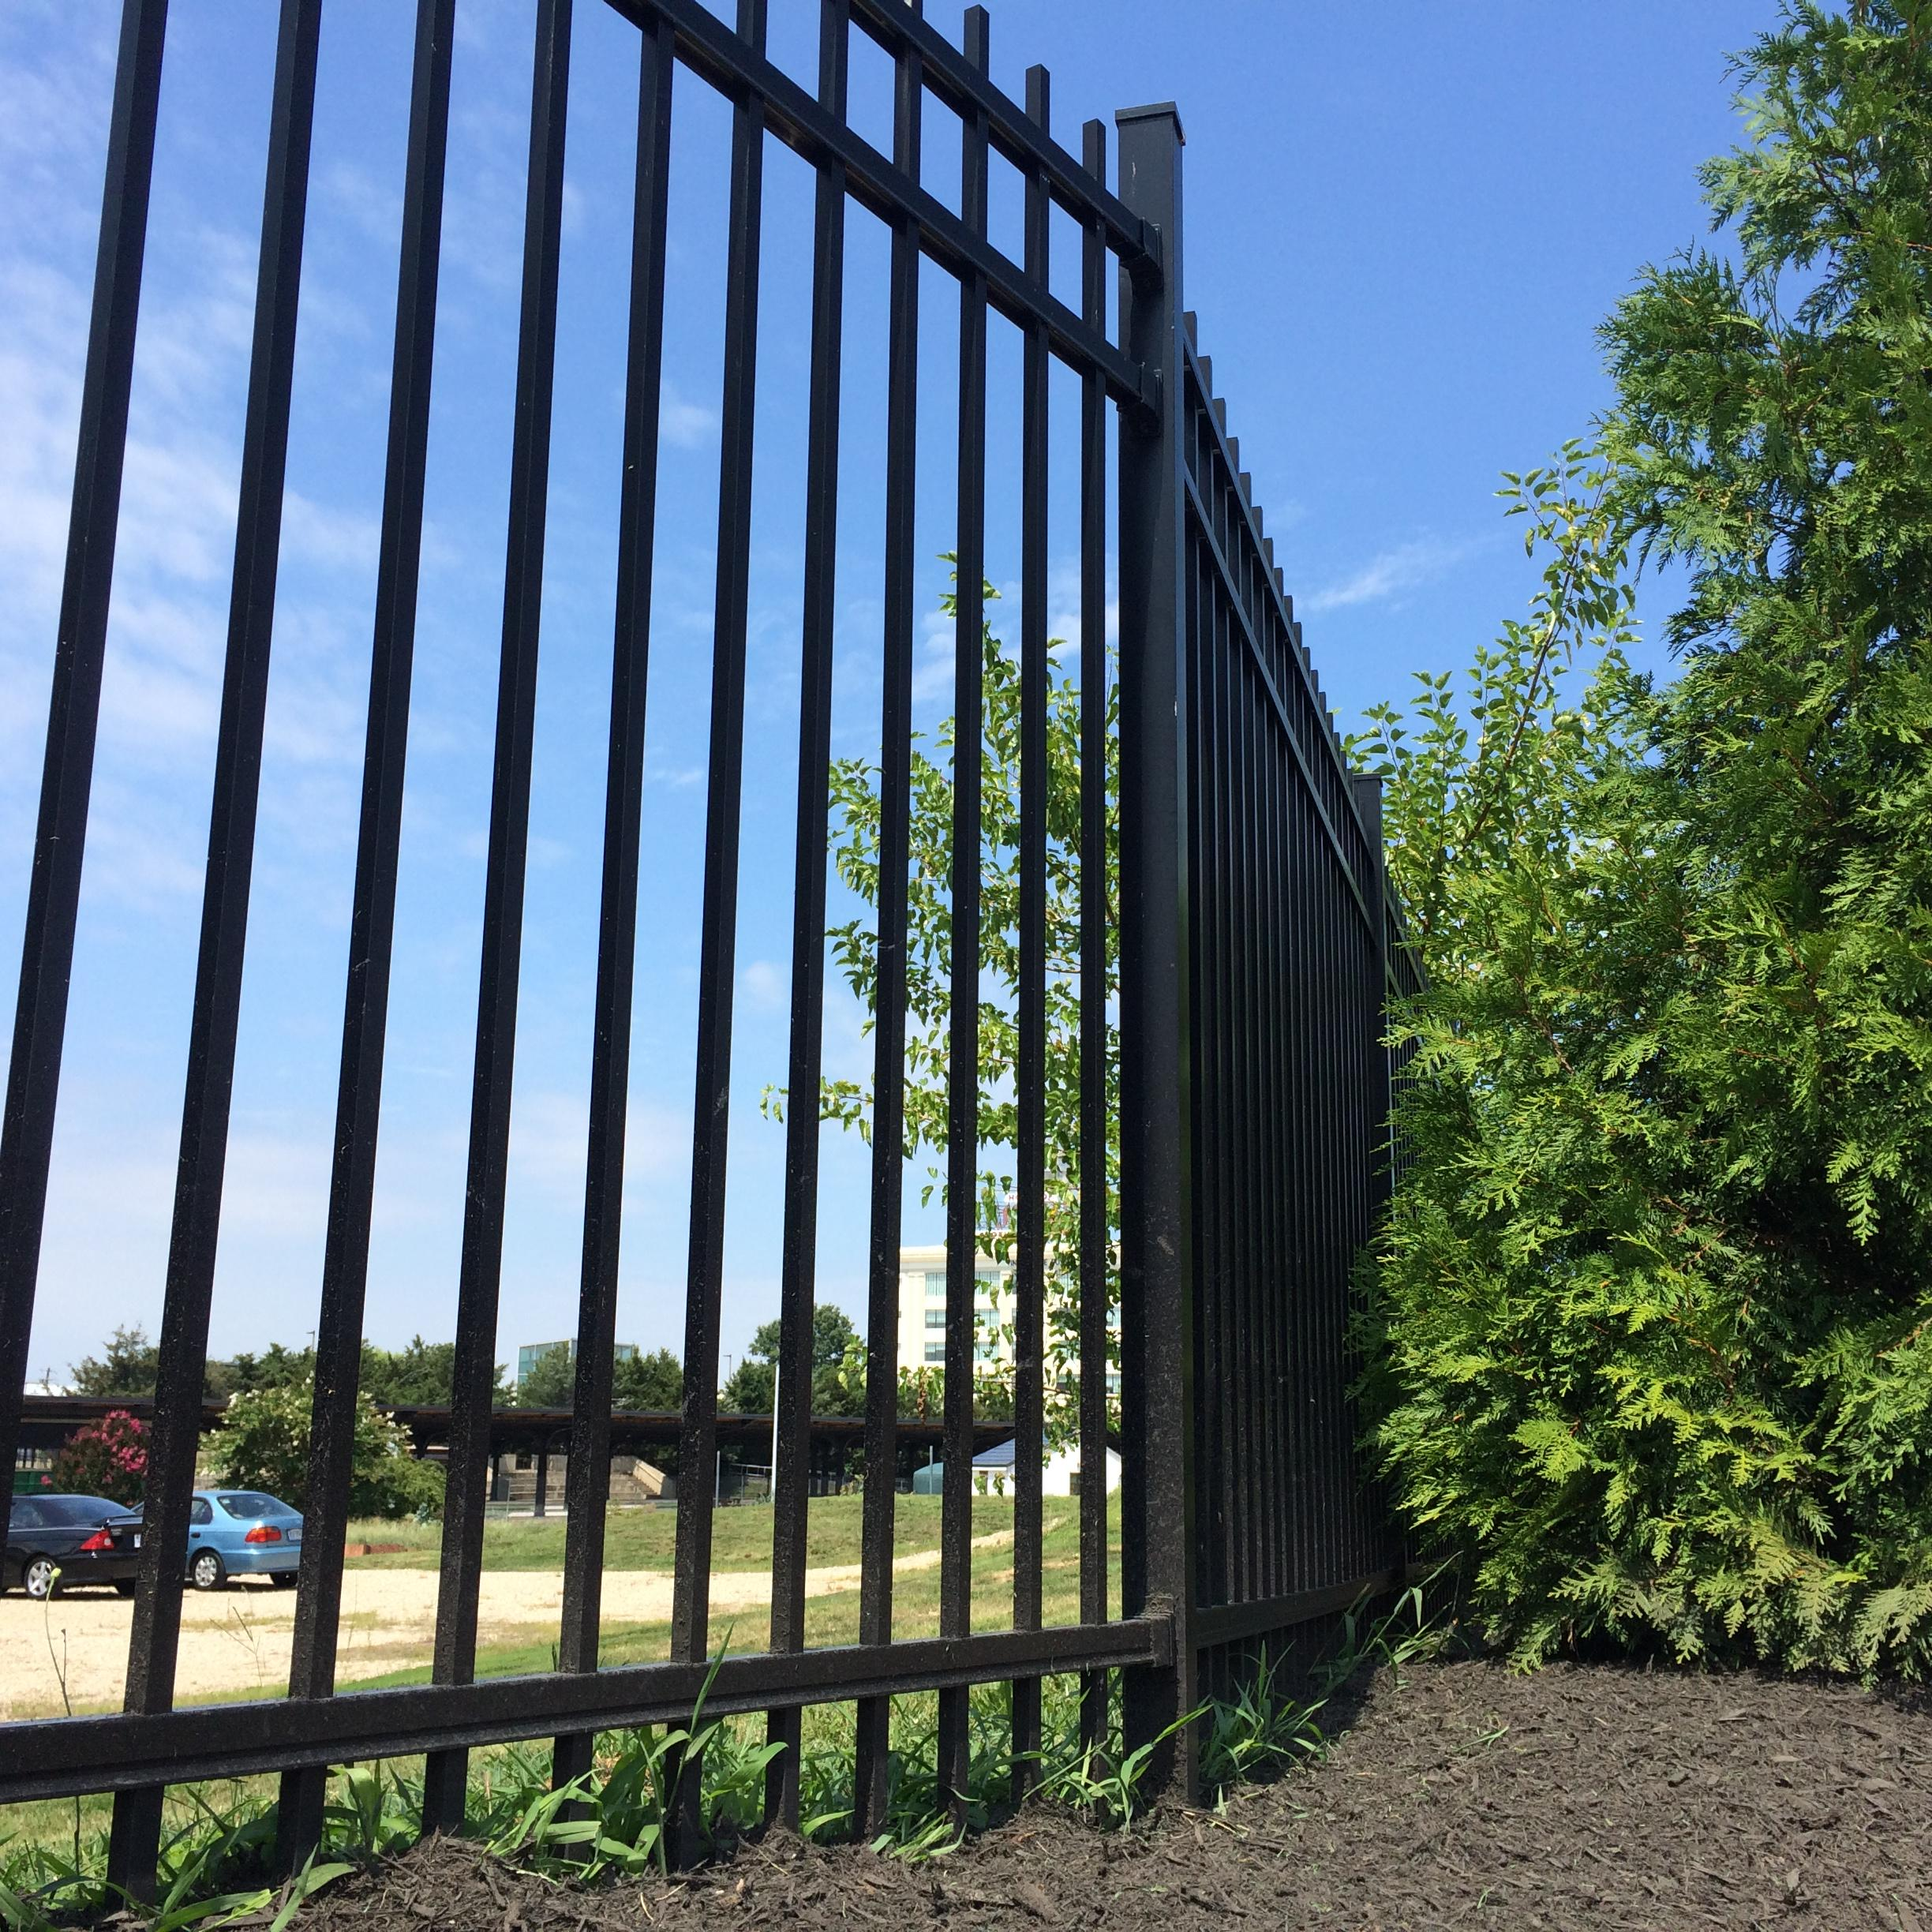 spear picket aluminum fencing surrounds redskins training camp in Richmond, Virginia.